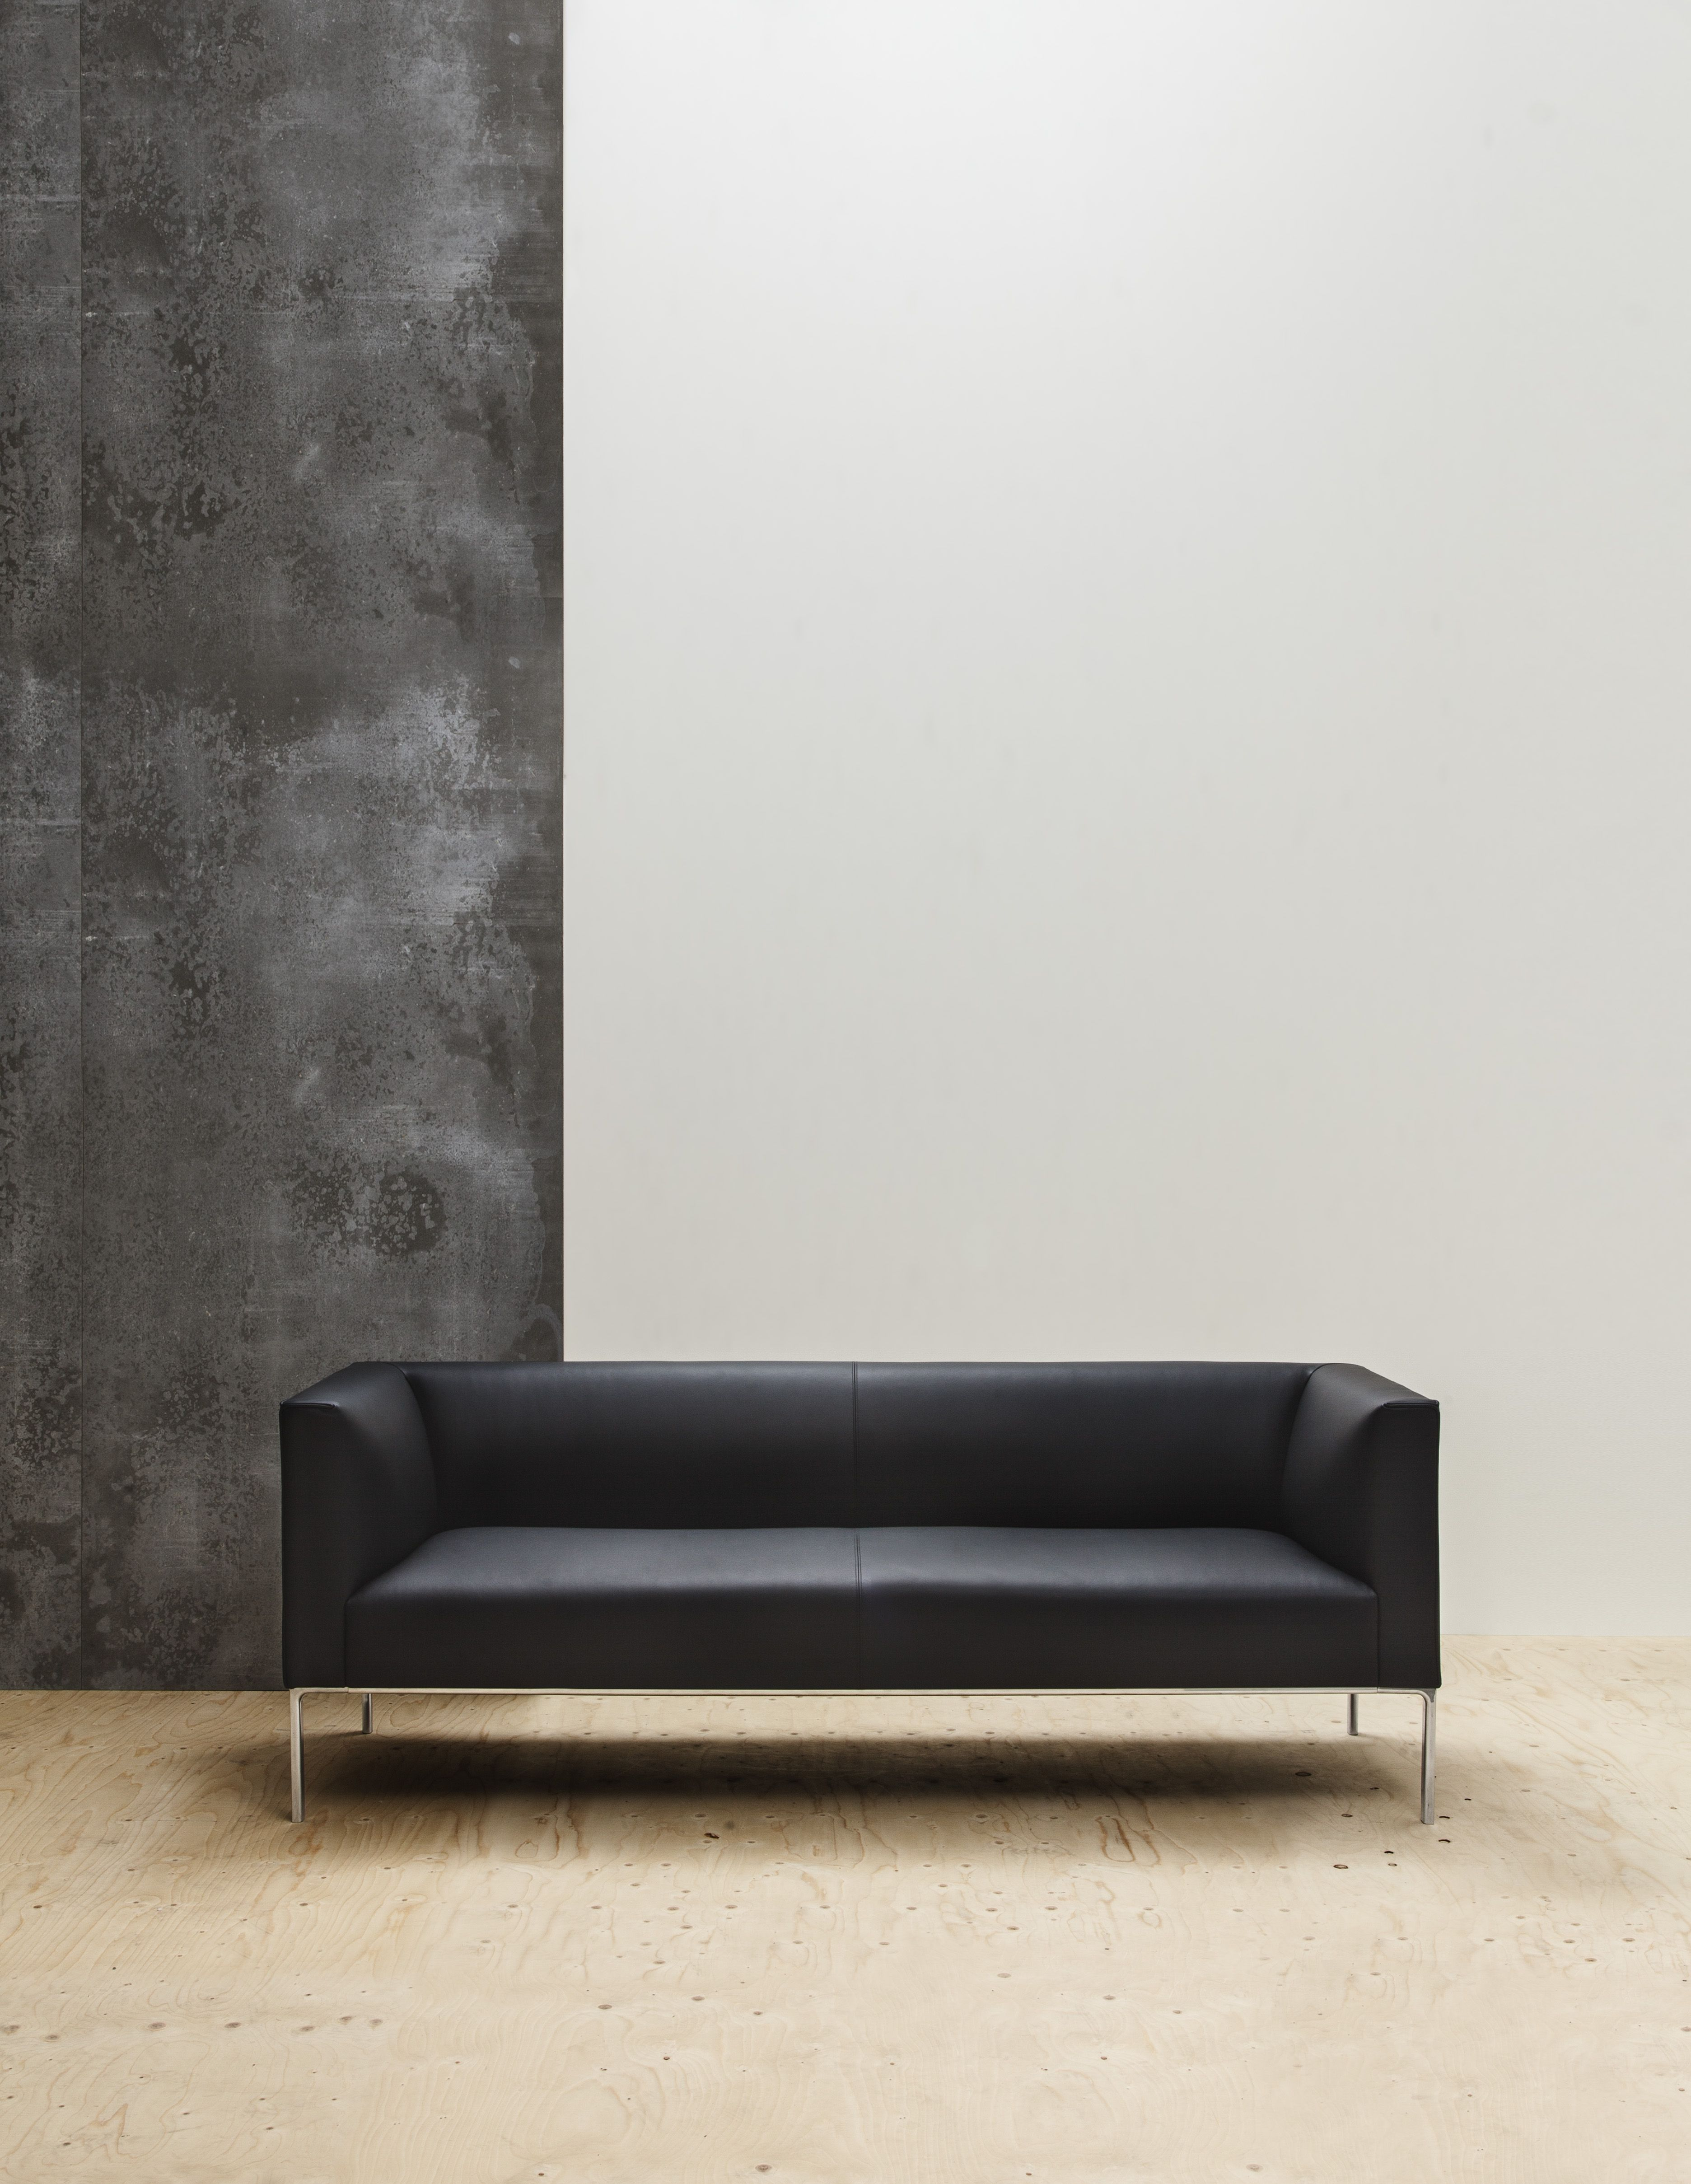 Raglan Is A Modular Sofa System Designed For Collaboration Areas In Corporate Public And Private Spaces Highlighted For Its Sofa Modular Sofa Lounge Seating